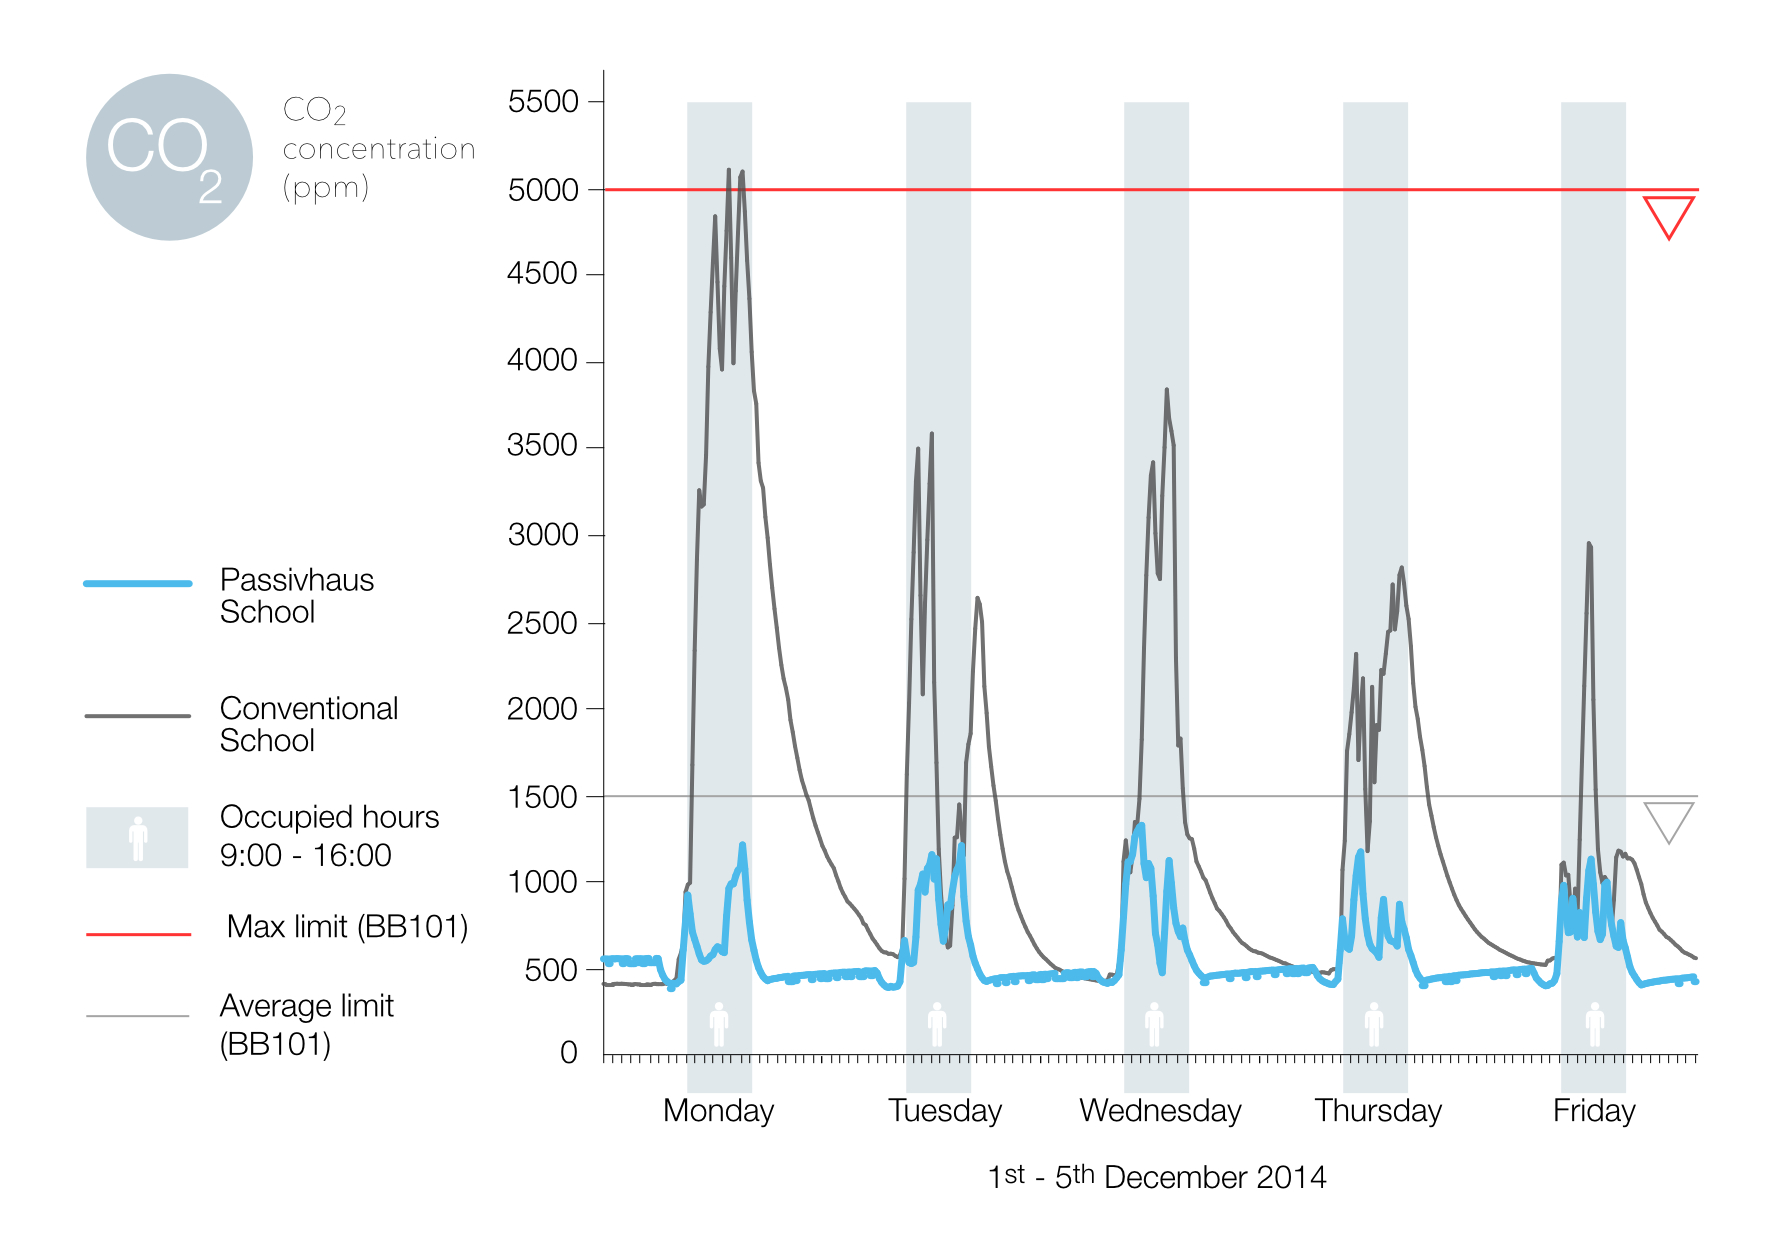 Measuring the carbon dioxide concentration in classrooms tells us about the quality of the air. This is particularly interesting in an educational environment.  The maximum carbon dioxide concentration in classrooms should not exceed 5000 particles per million, ass shown with the red line.Excess of this will begin to impede teachers and pupil performance negatively.  As shown on the graph, the conventional school has frequently high levels of carbon dioxide during occupied hours, always much higher than the average limit and on Monday, exceeding the upper limit.  The Passivhaus school remains well below the average limit every day, helping pupils stay fresh and alert all through the day